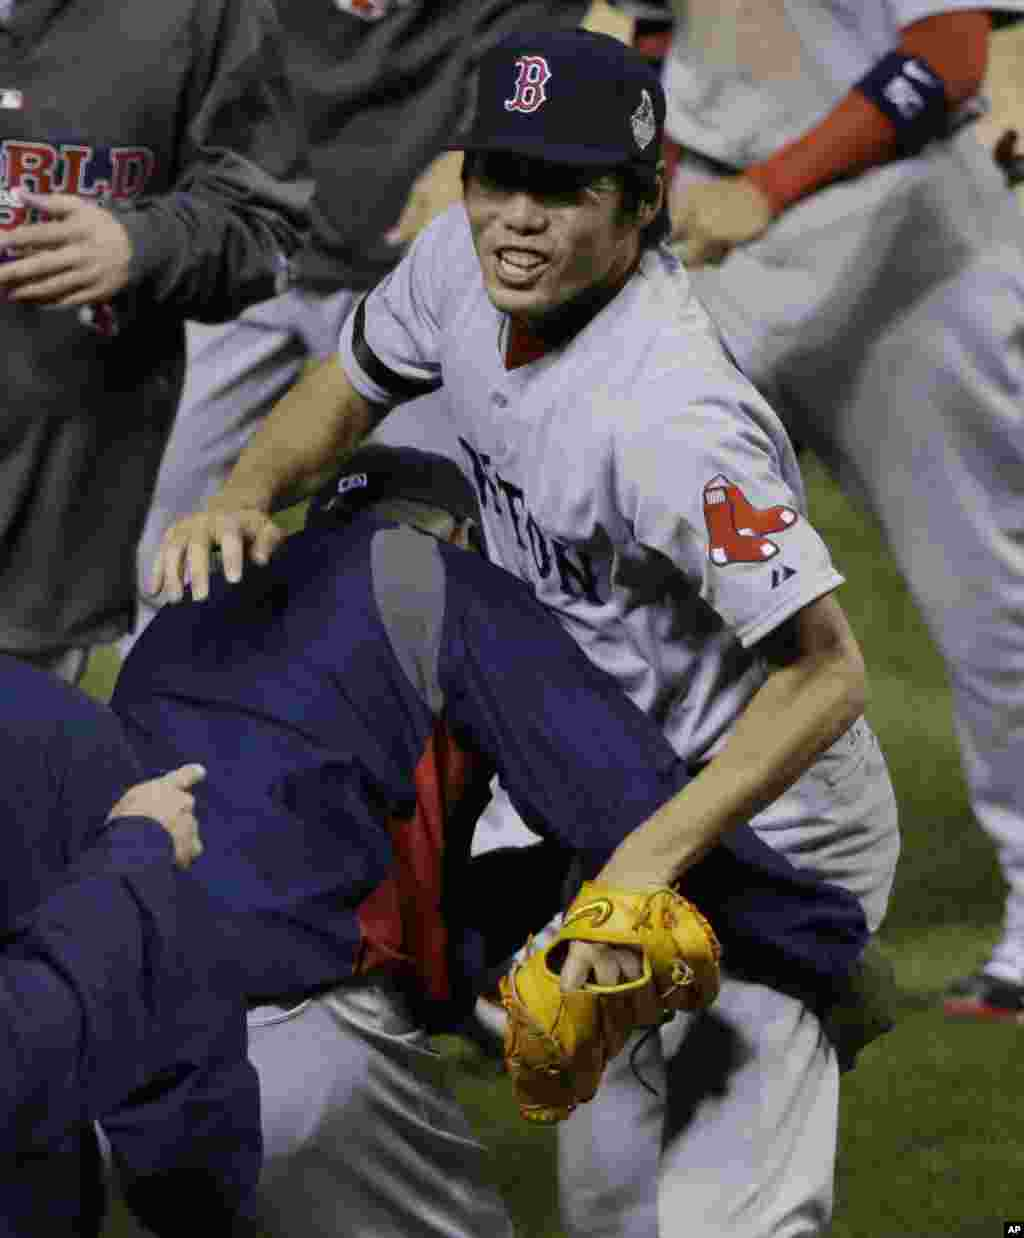 Boston Red Sox relief pitcher Koji Uehara, right, celebrates after picking off St. Louis Cardinals Kolten Wong at first base to end Game 4 of baseball's World Series, Oct. 27, 2013, in St. Louis.